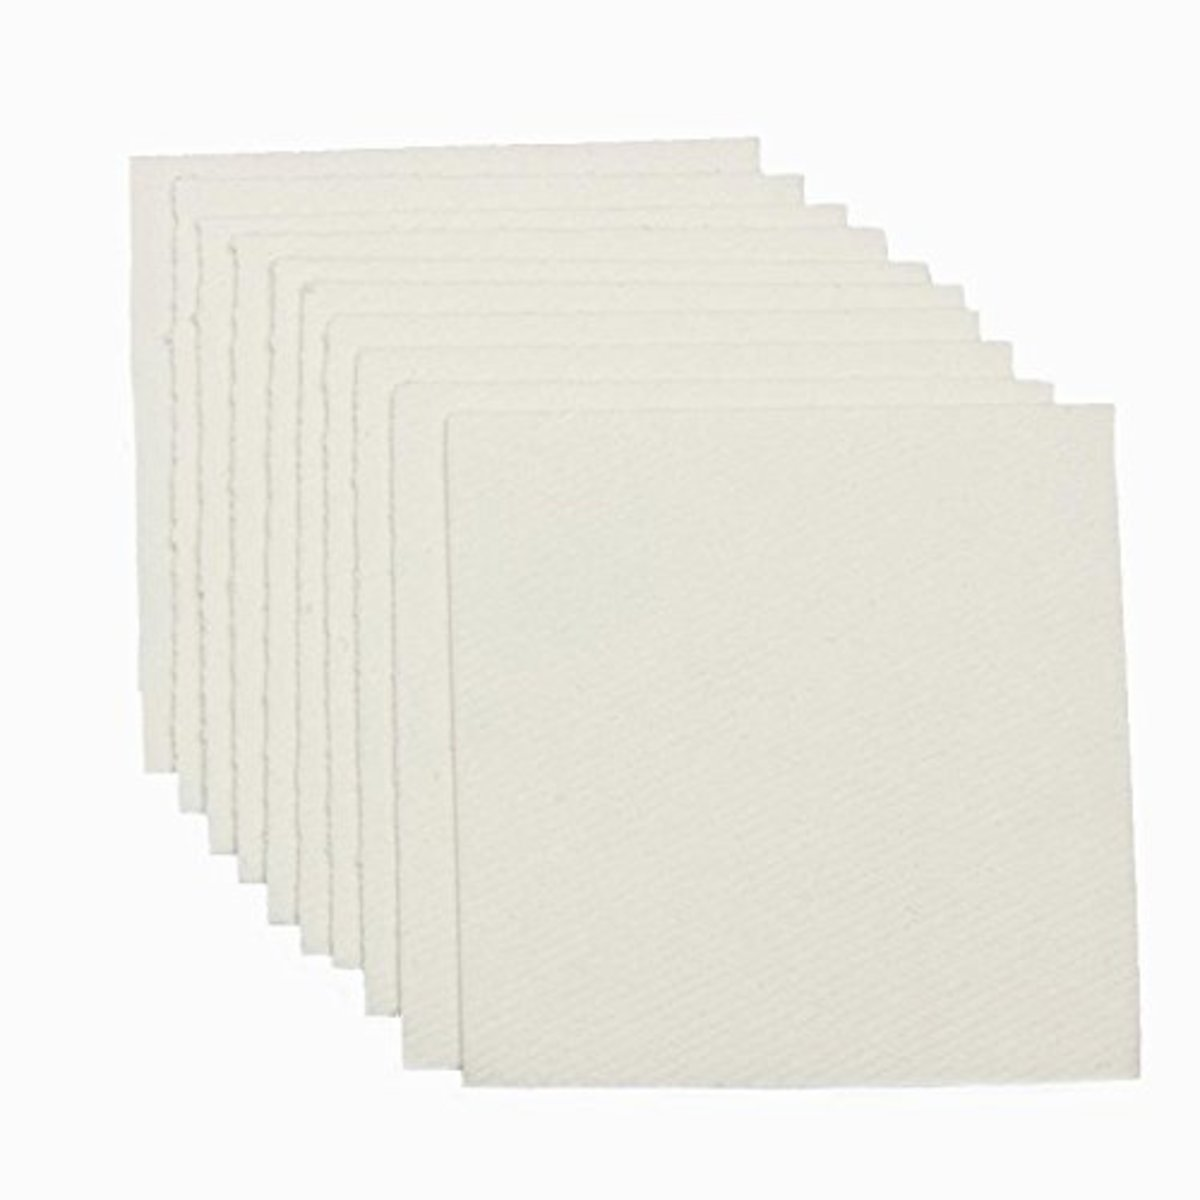 """50  Kiln Shelf Papers 2 1/2"""" X 2 1/2""""  for Microwave Kilns -cost, about $9 on Amazon"""